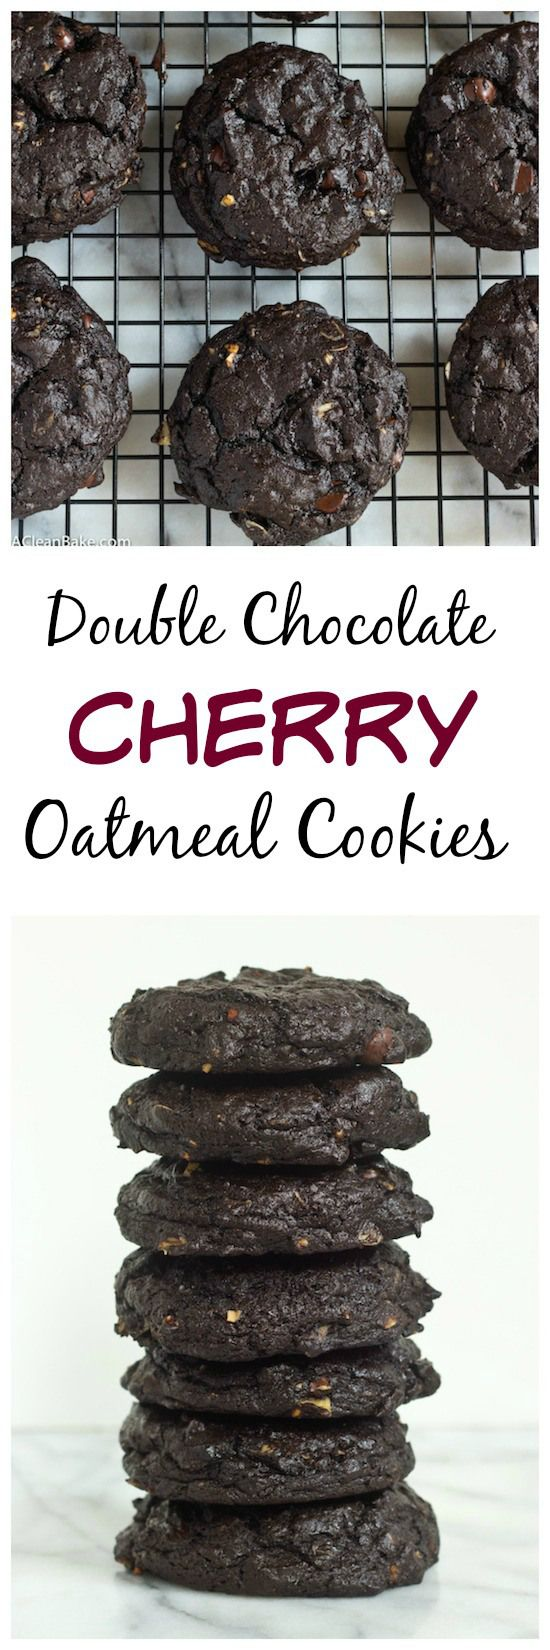 Double Chocolate Cherry Oatmeal Cookies 2/3 cup almond butter (creamy, sweetened) 3 Tablespoons butter, vegan butter or coconut oil ½ cup honey 1 large egg ½ teaspoon vanilla extract pinch of salt ½ teaspoon baking soda ½ cup cocoa powder ½ cup rolled oats ¼ cup chocolate chips ¼ cup dried cherries